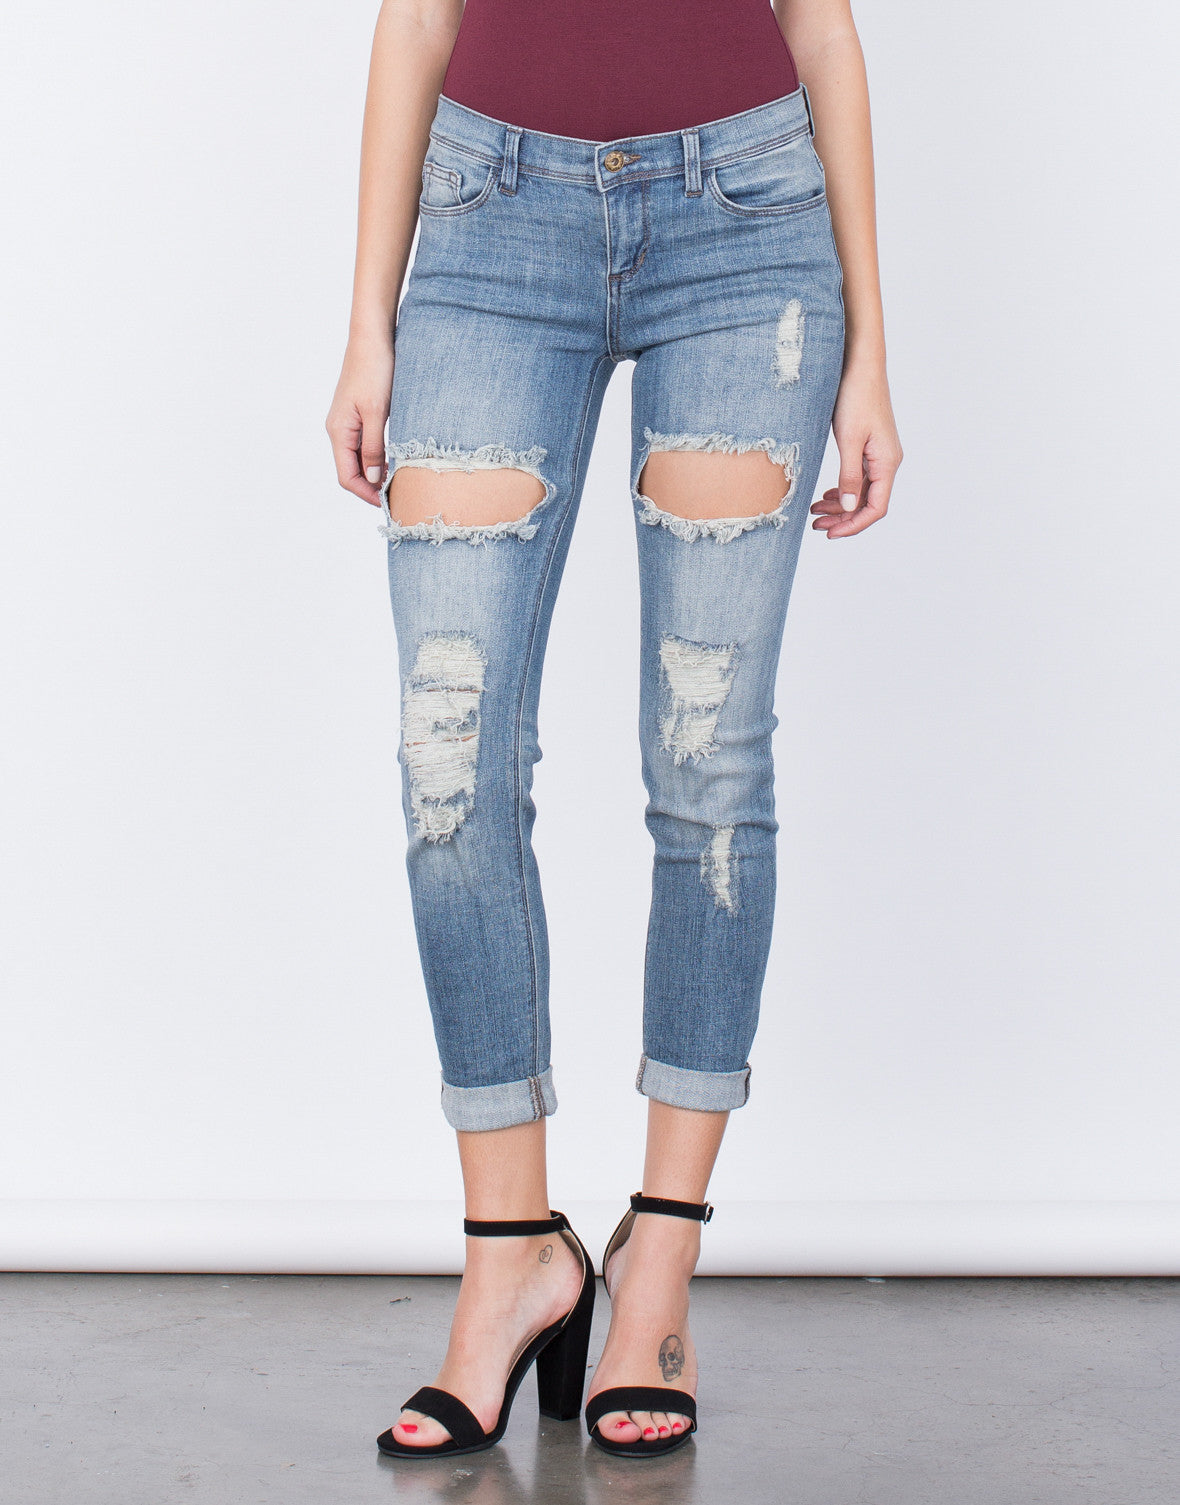 Front View of Ripped Up Jeans